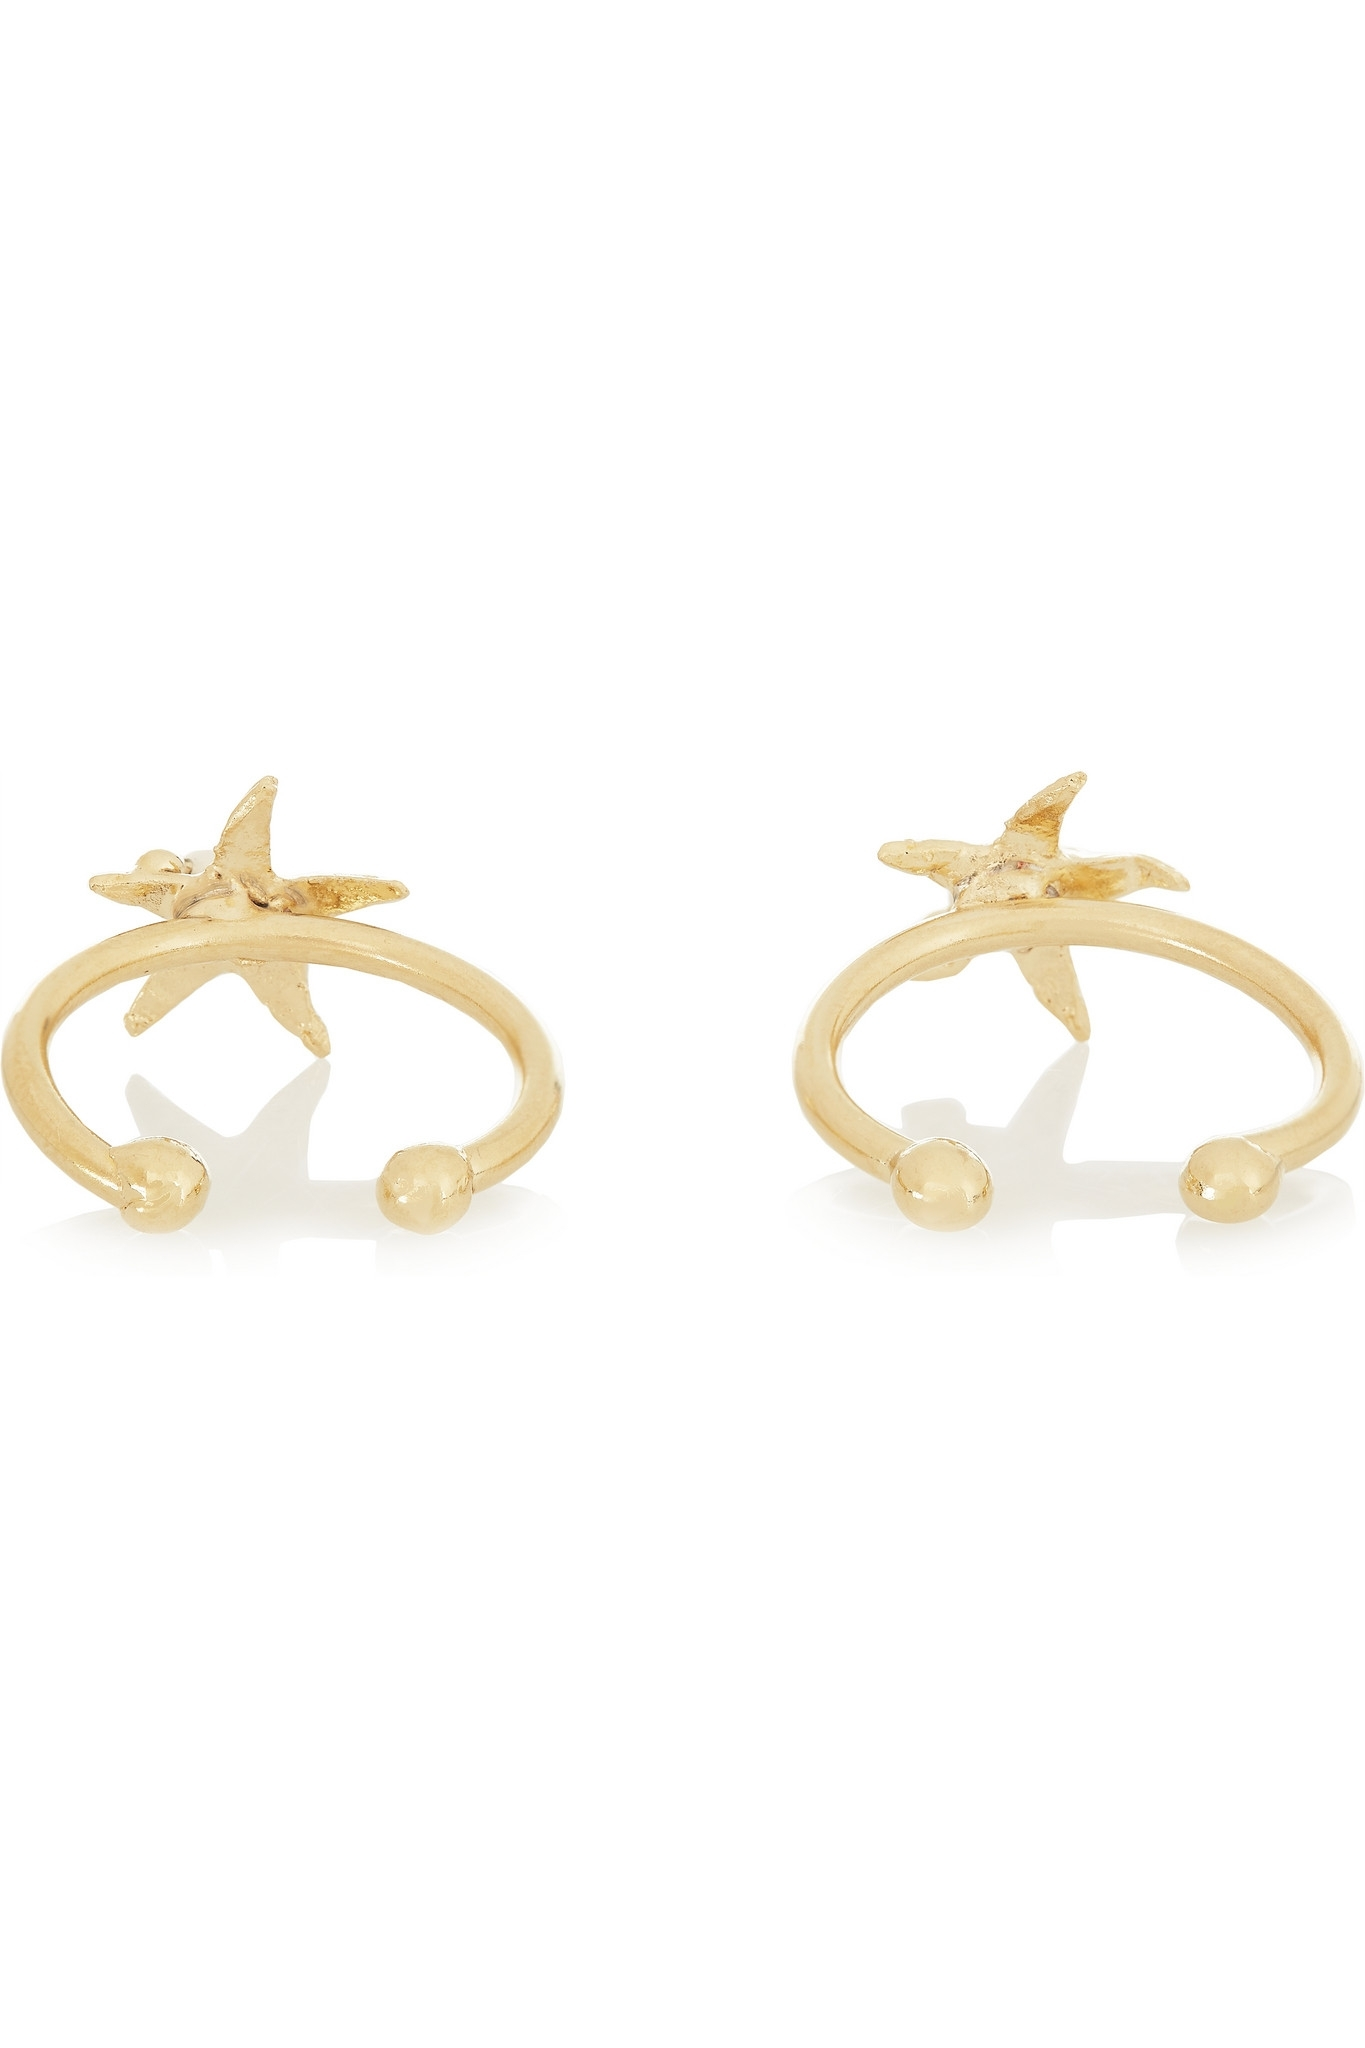 Lyst – Rosantica Profondo Set Of Two Gold Tone Pearl Toe Rings In Pertaining To Most Popular Pearl Toe Rings (View 11 of 15)